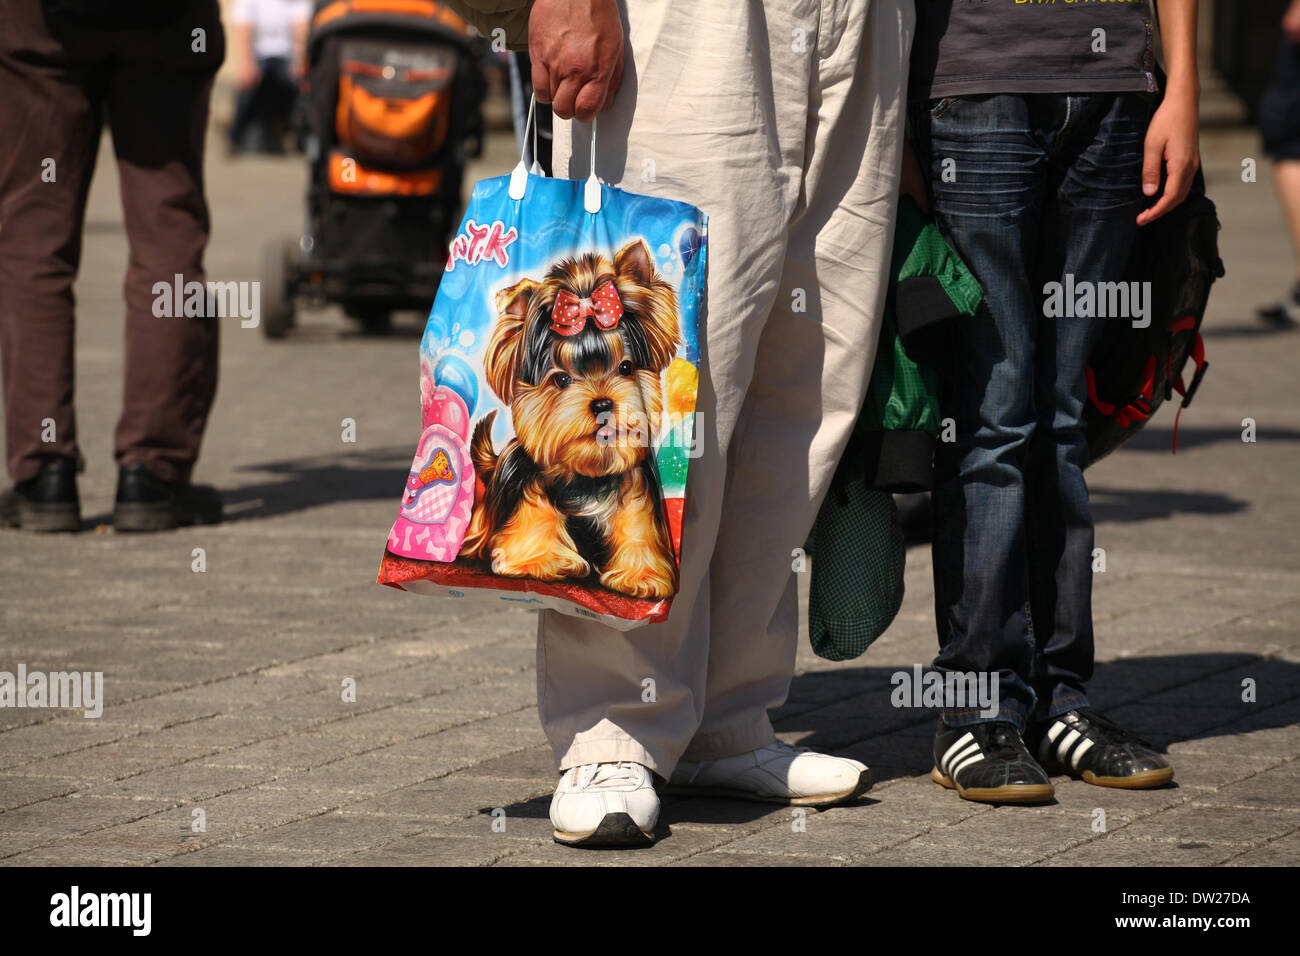 A man from Eastern Europe holding a cheese bag at the Brandenburg Gate in Berlin, July 16, 2013. More and more tourists come to the German capital every year. This photo is part of a series on tourism in Berlin. Photo: Wolfram Steinberg dpa - Stock Image